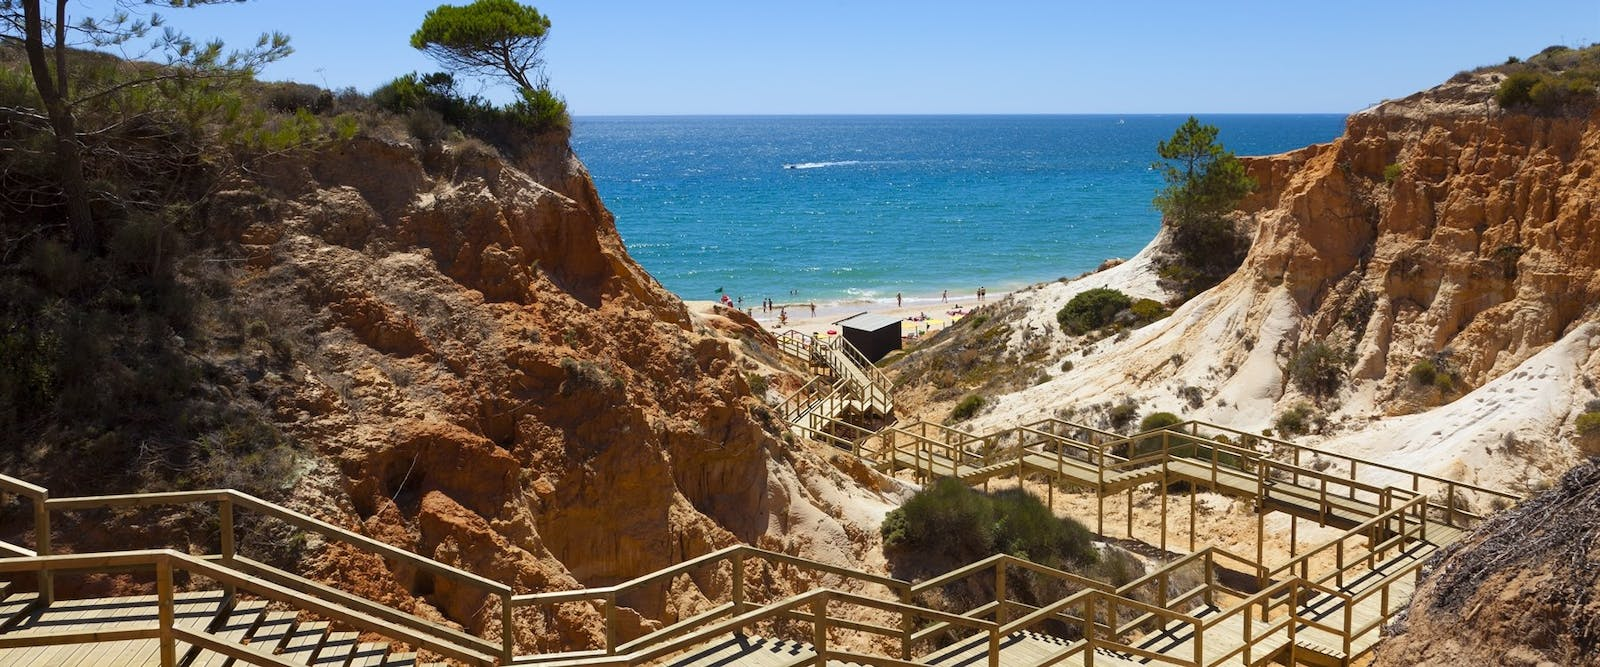 The Beach at Epic Sana, Algarve, Portugal